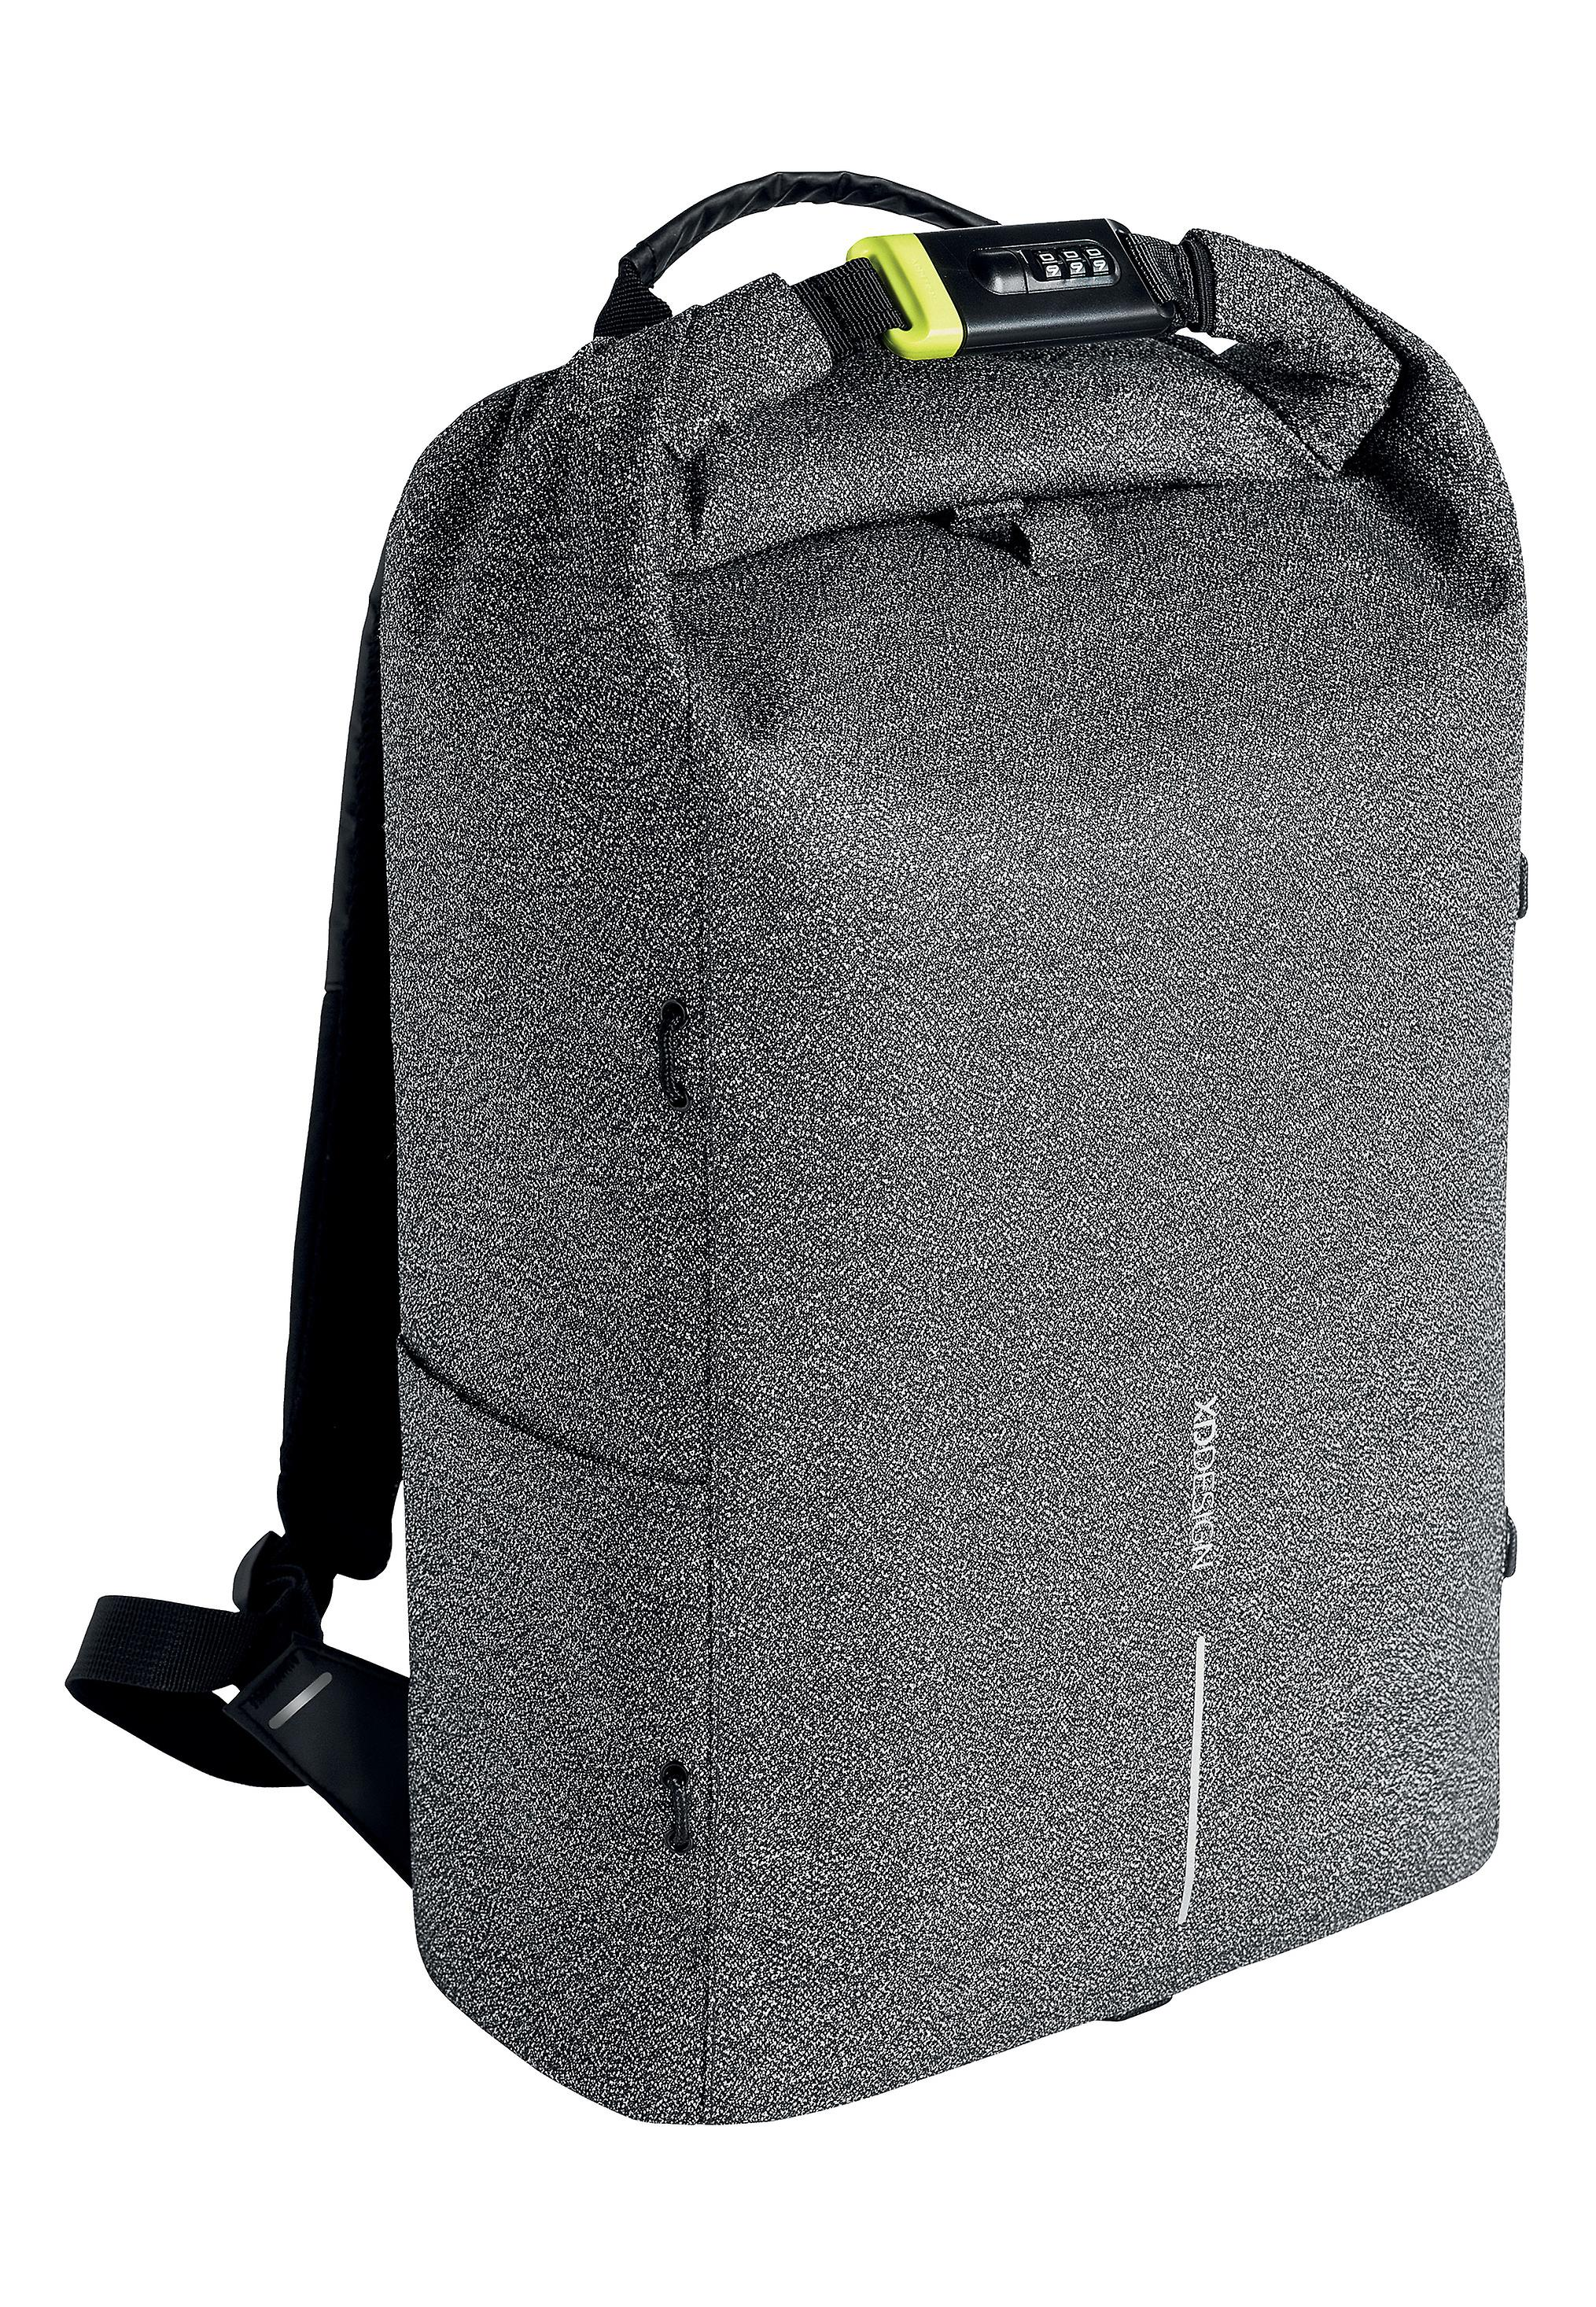 XD Design Urban Cut Resistant Anti-Theft Backpack Grey (Travel Bag)